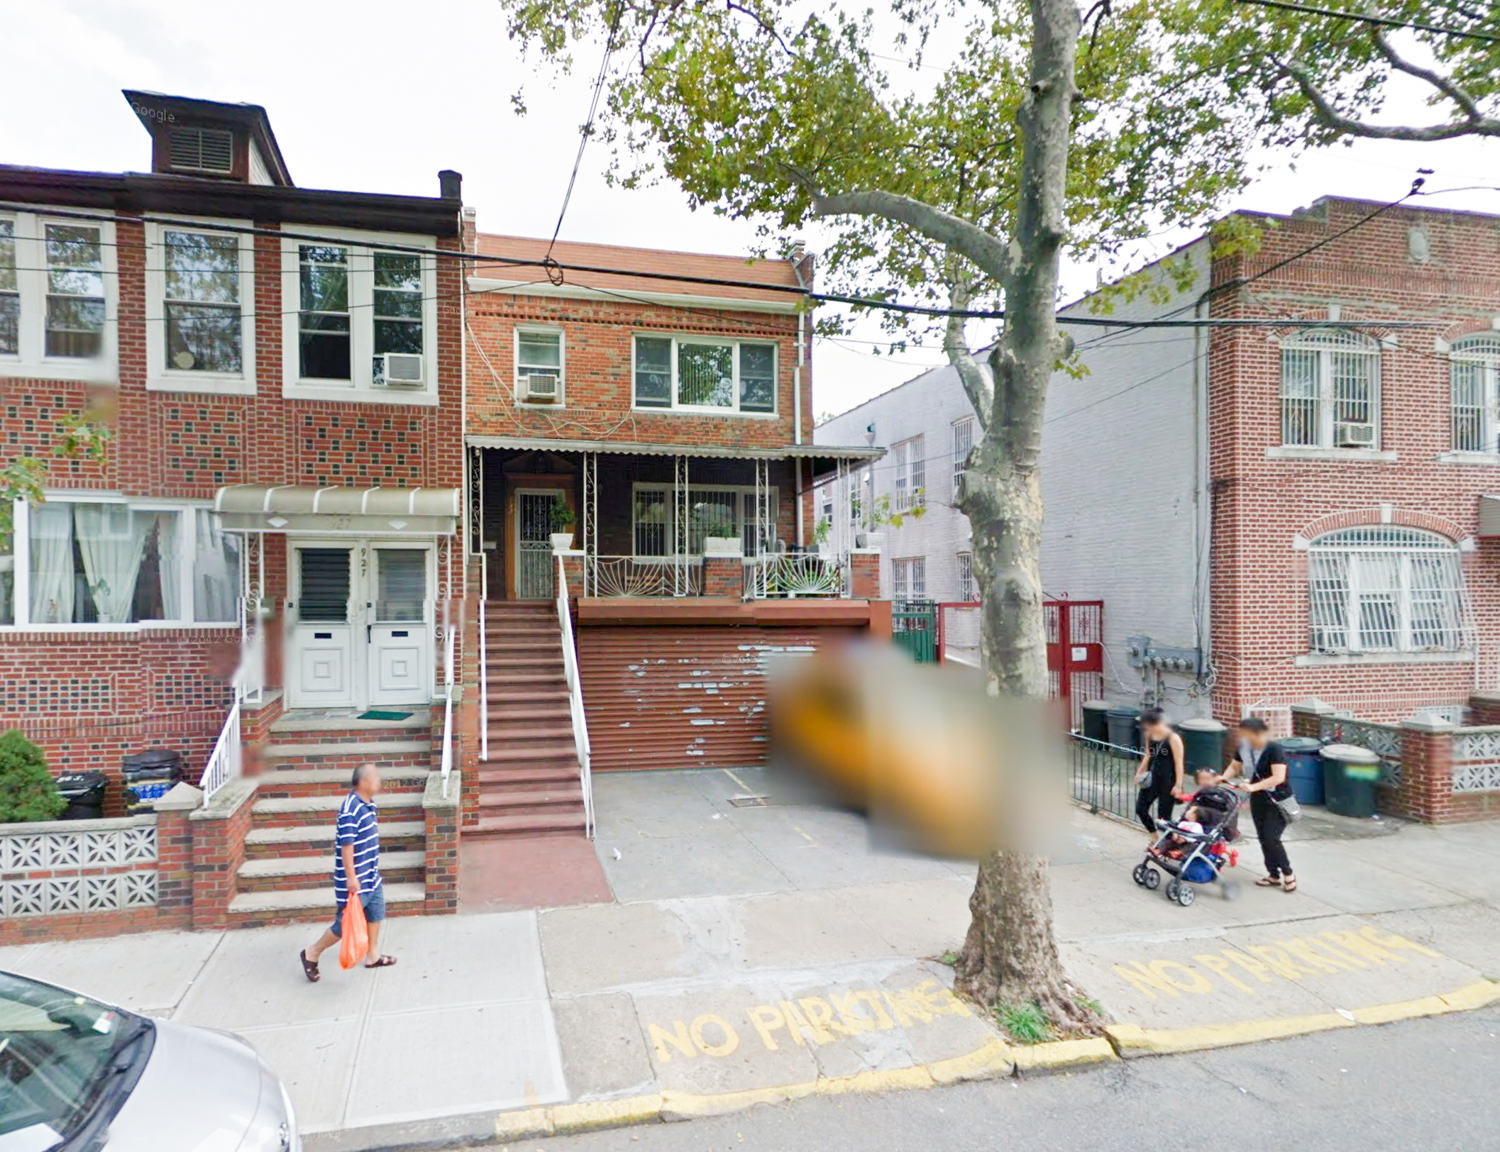 933 56th Street, via Google Maps